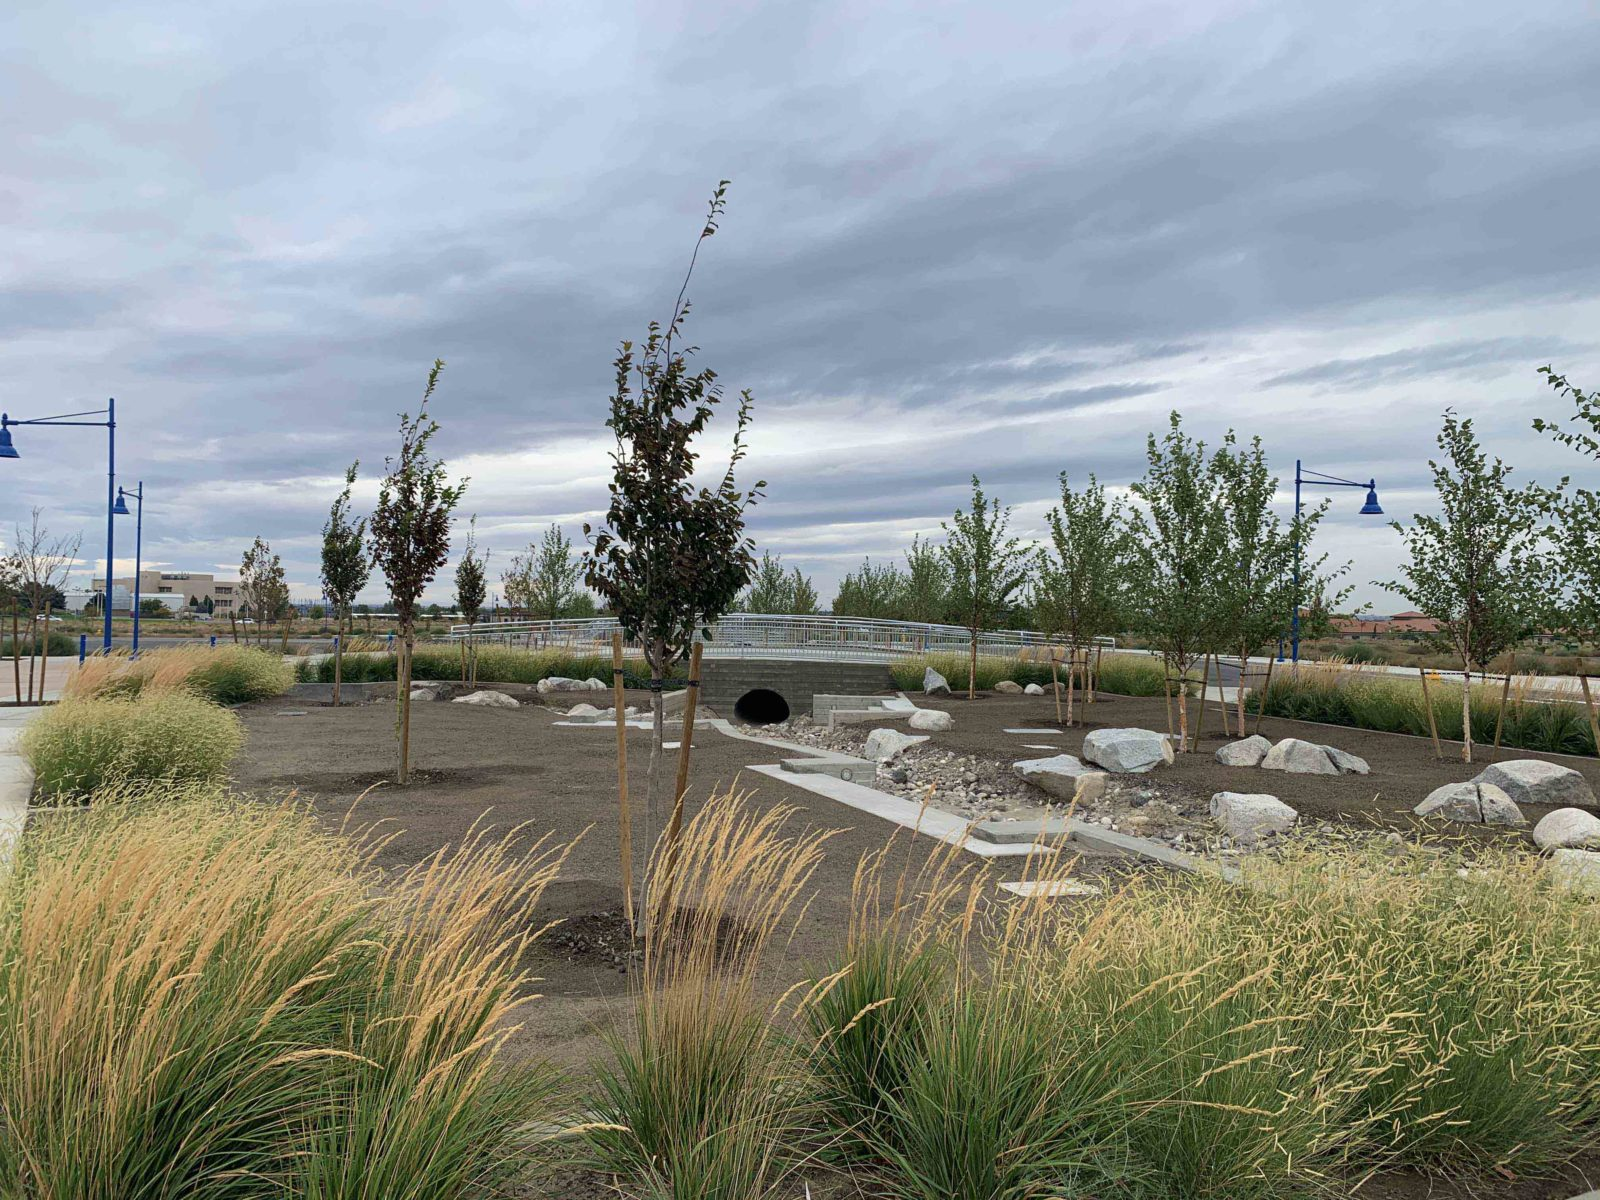 Landscaping and water feature at Vista Field - phase one redevelopment.